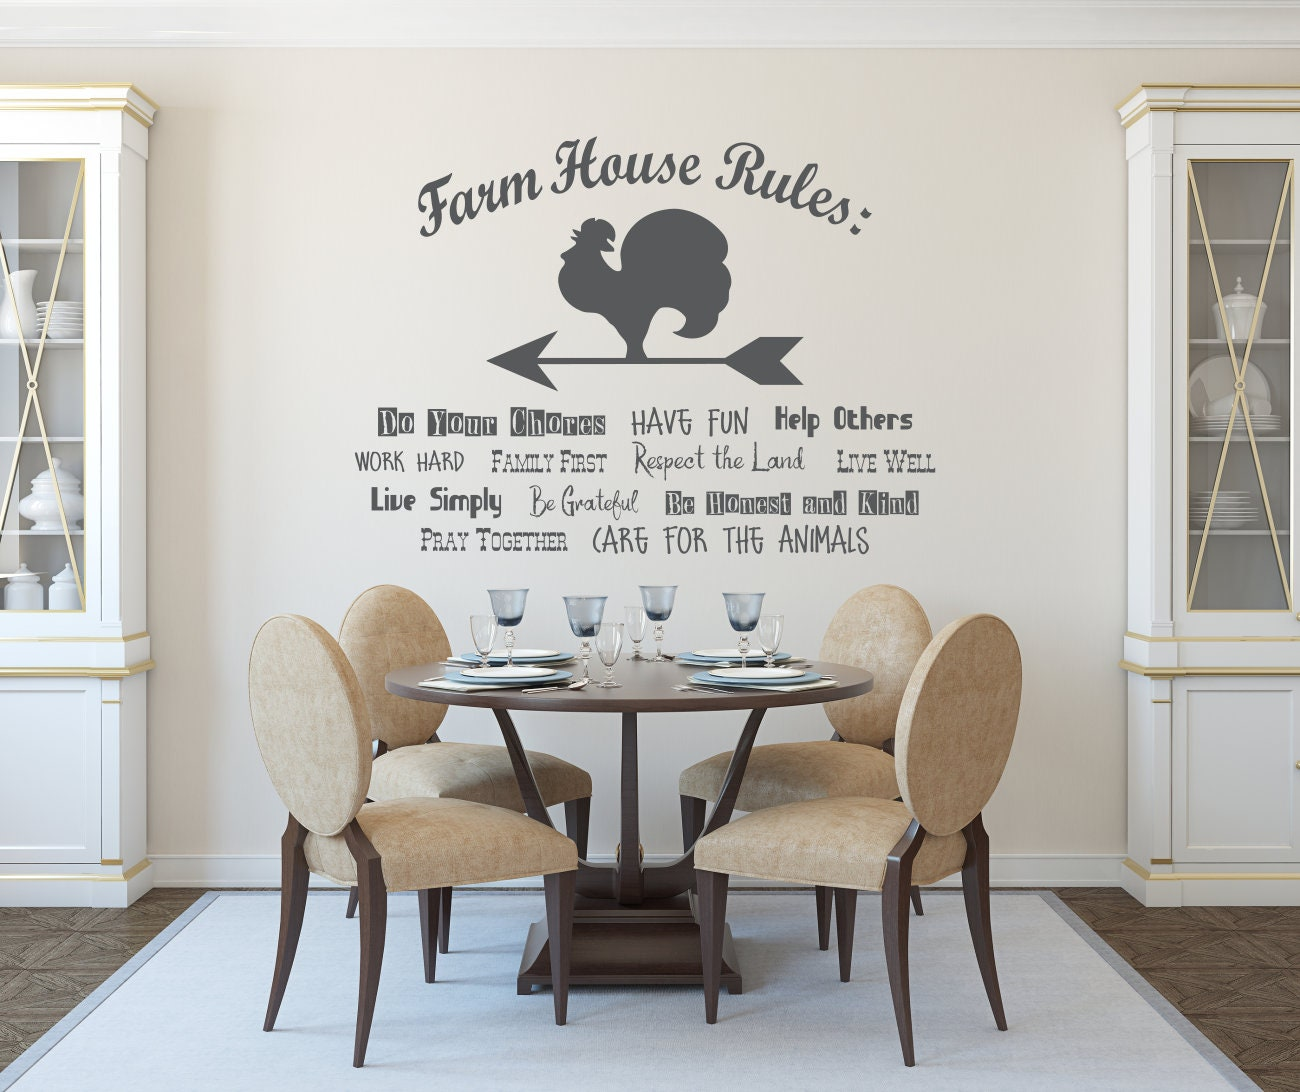 Farmhouse Wall Decal, Farmhouse Rules, Decal For Kitchen